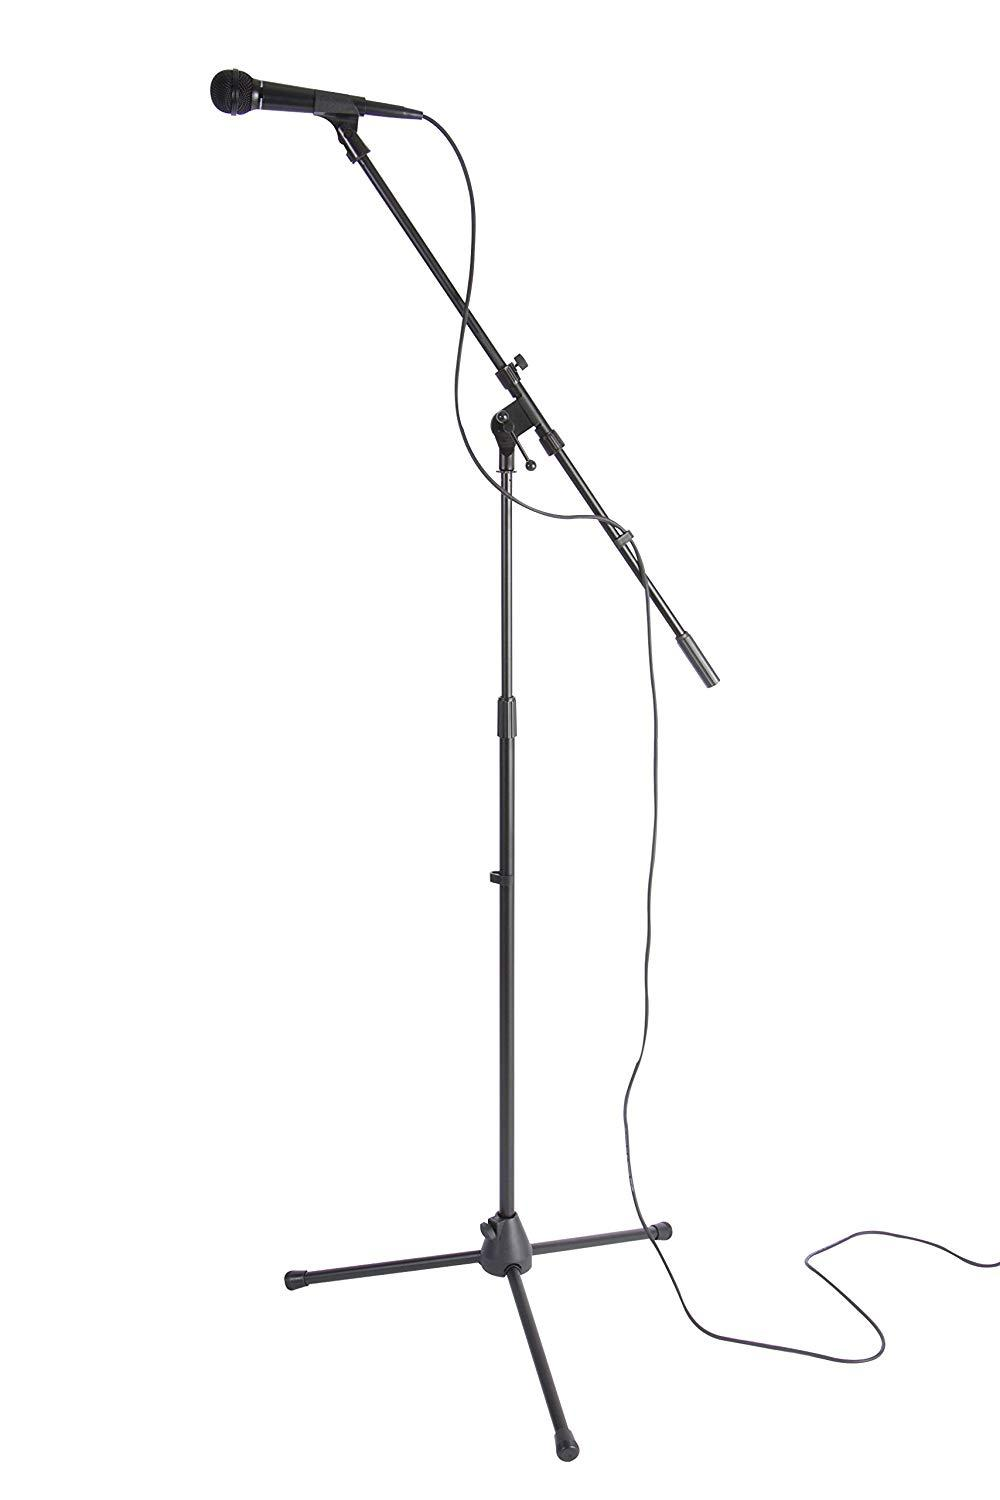 Mic Accessories For Sale Microphone Prices Brands Simple Circuit Stand Adjustable Boom